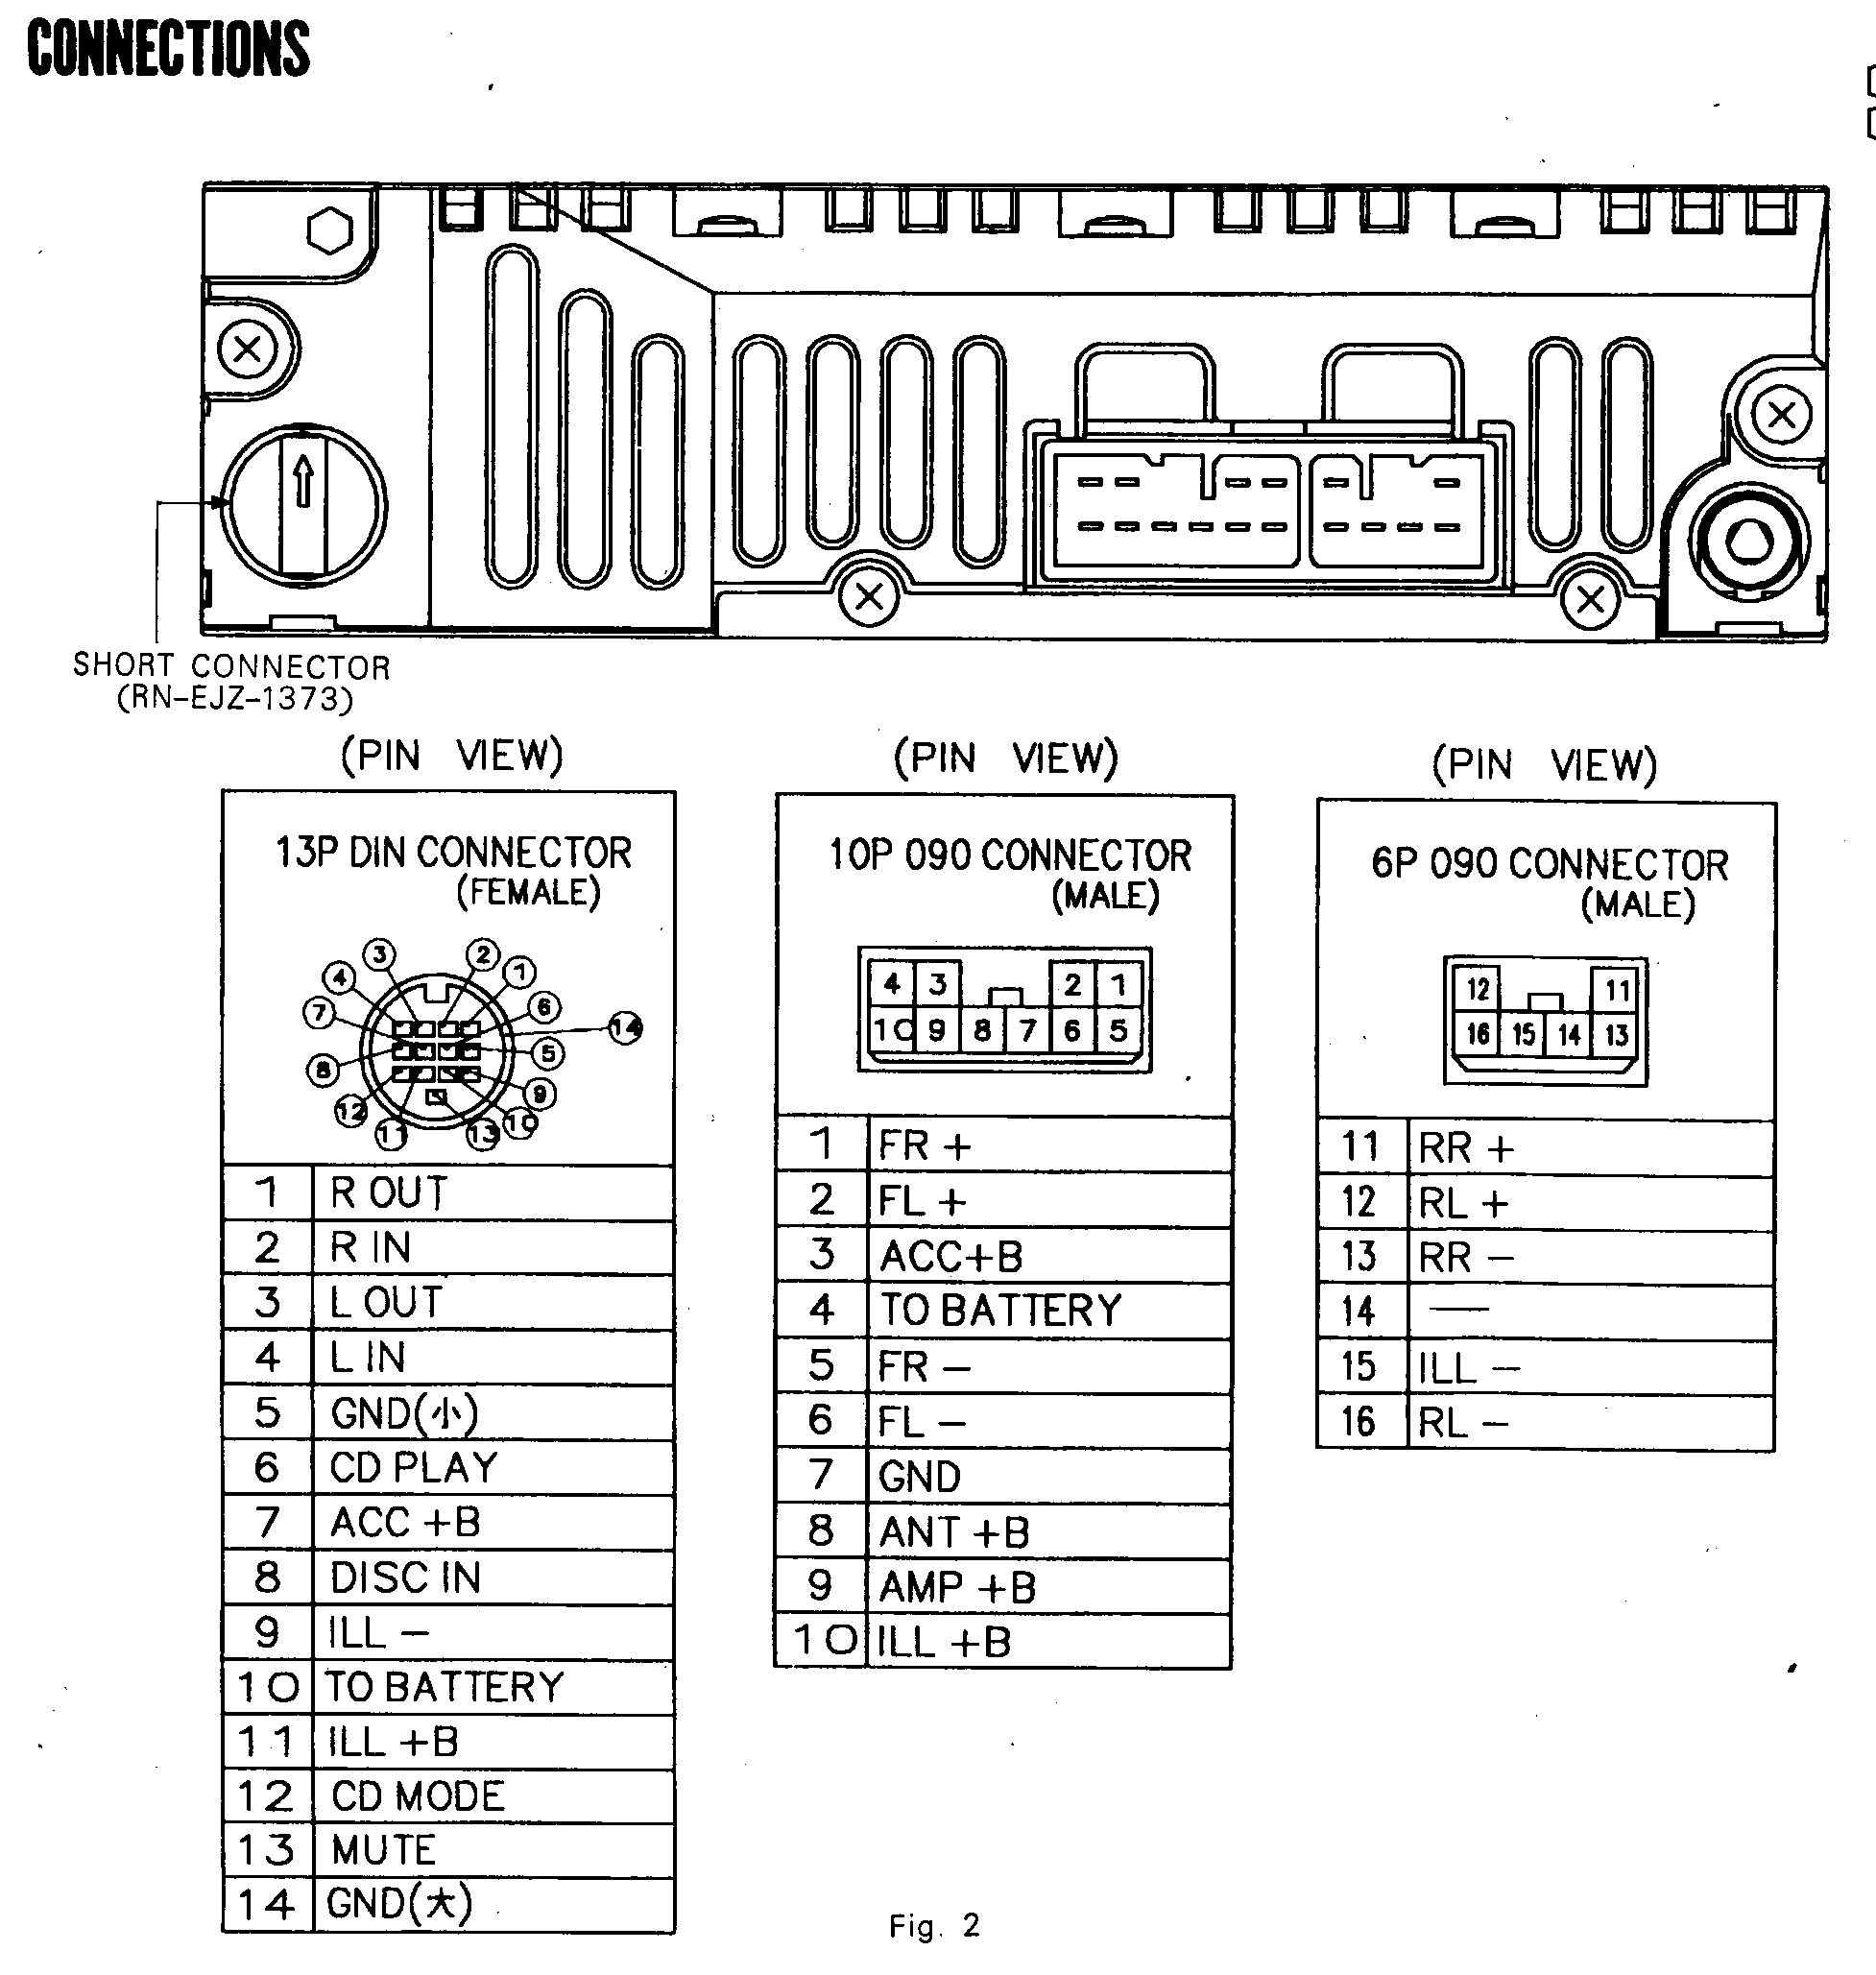 hight resolution of kenwood dnx5140 wiring diagram additionally ford automatic wiringkenwood dnx6140 wiring diagram we wiring diagramkenwood kdc 2019